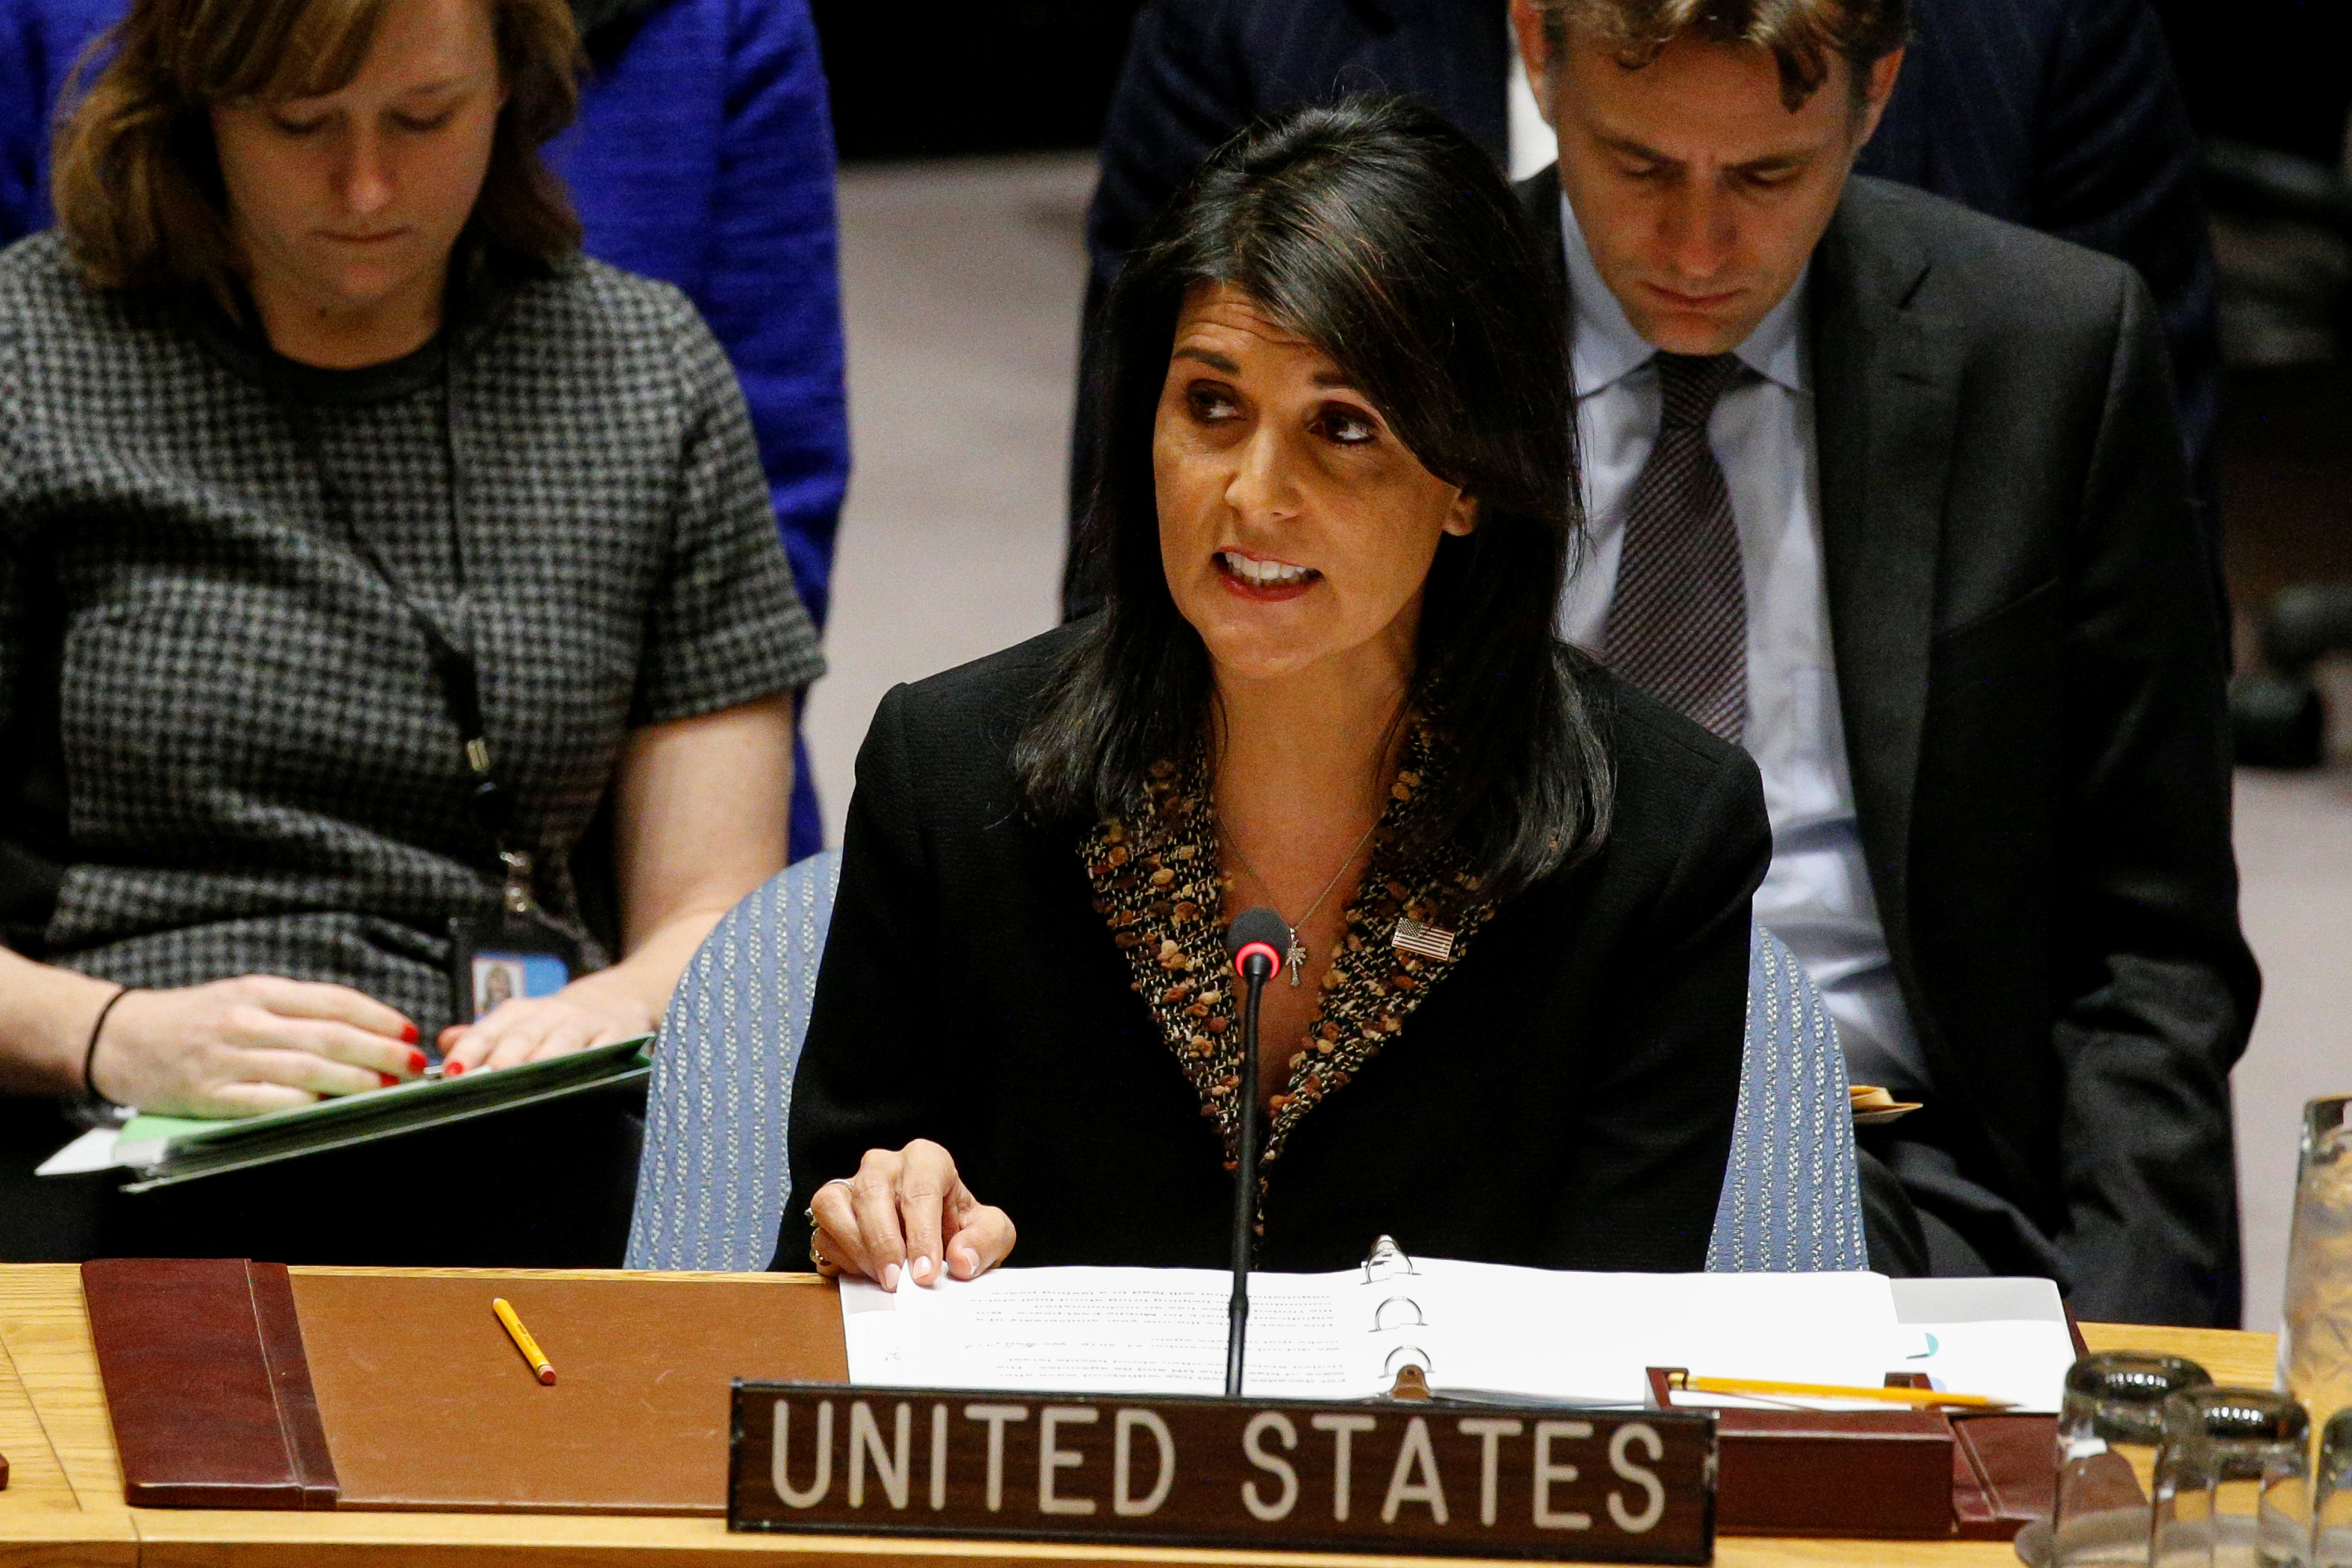 U.S. Ambassador to the United Nations Nikki Haley speaks during the United Nations Security Council meeting on the situation in the Middle East, including Palestine, at U.N. Headquarters in New York City, New York, U.S., December 18, 2017.